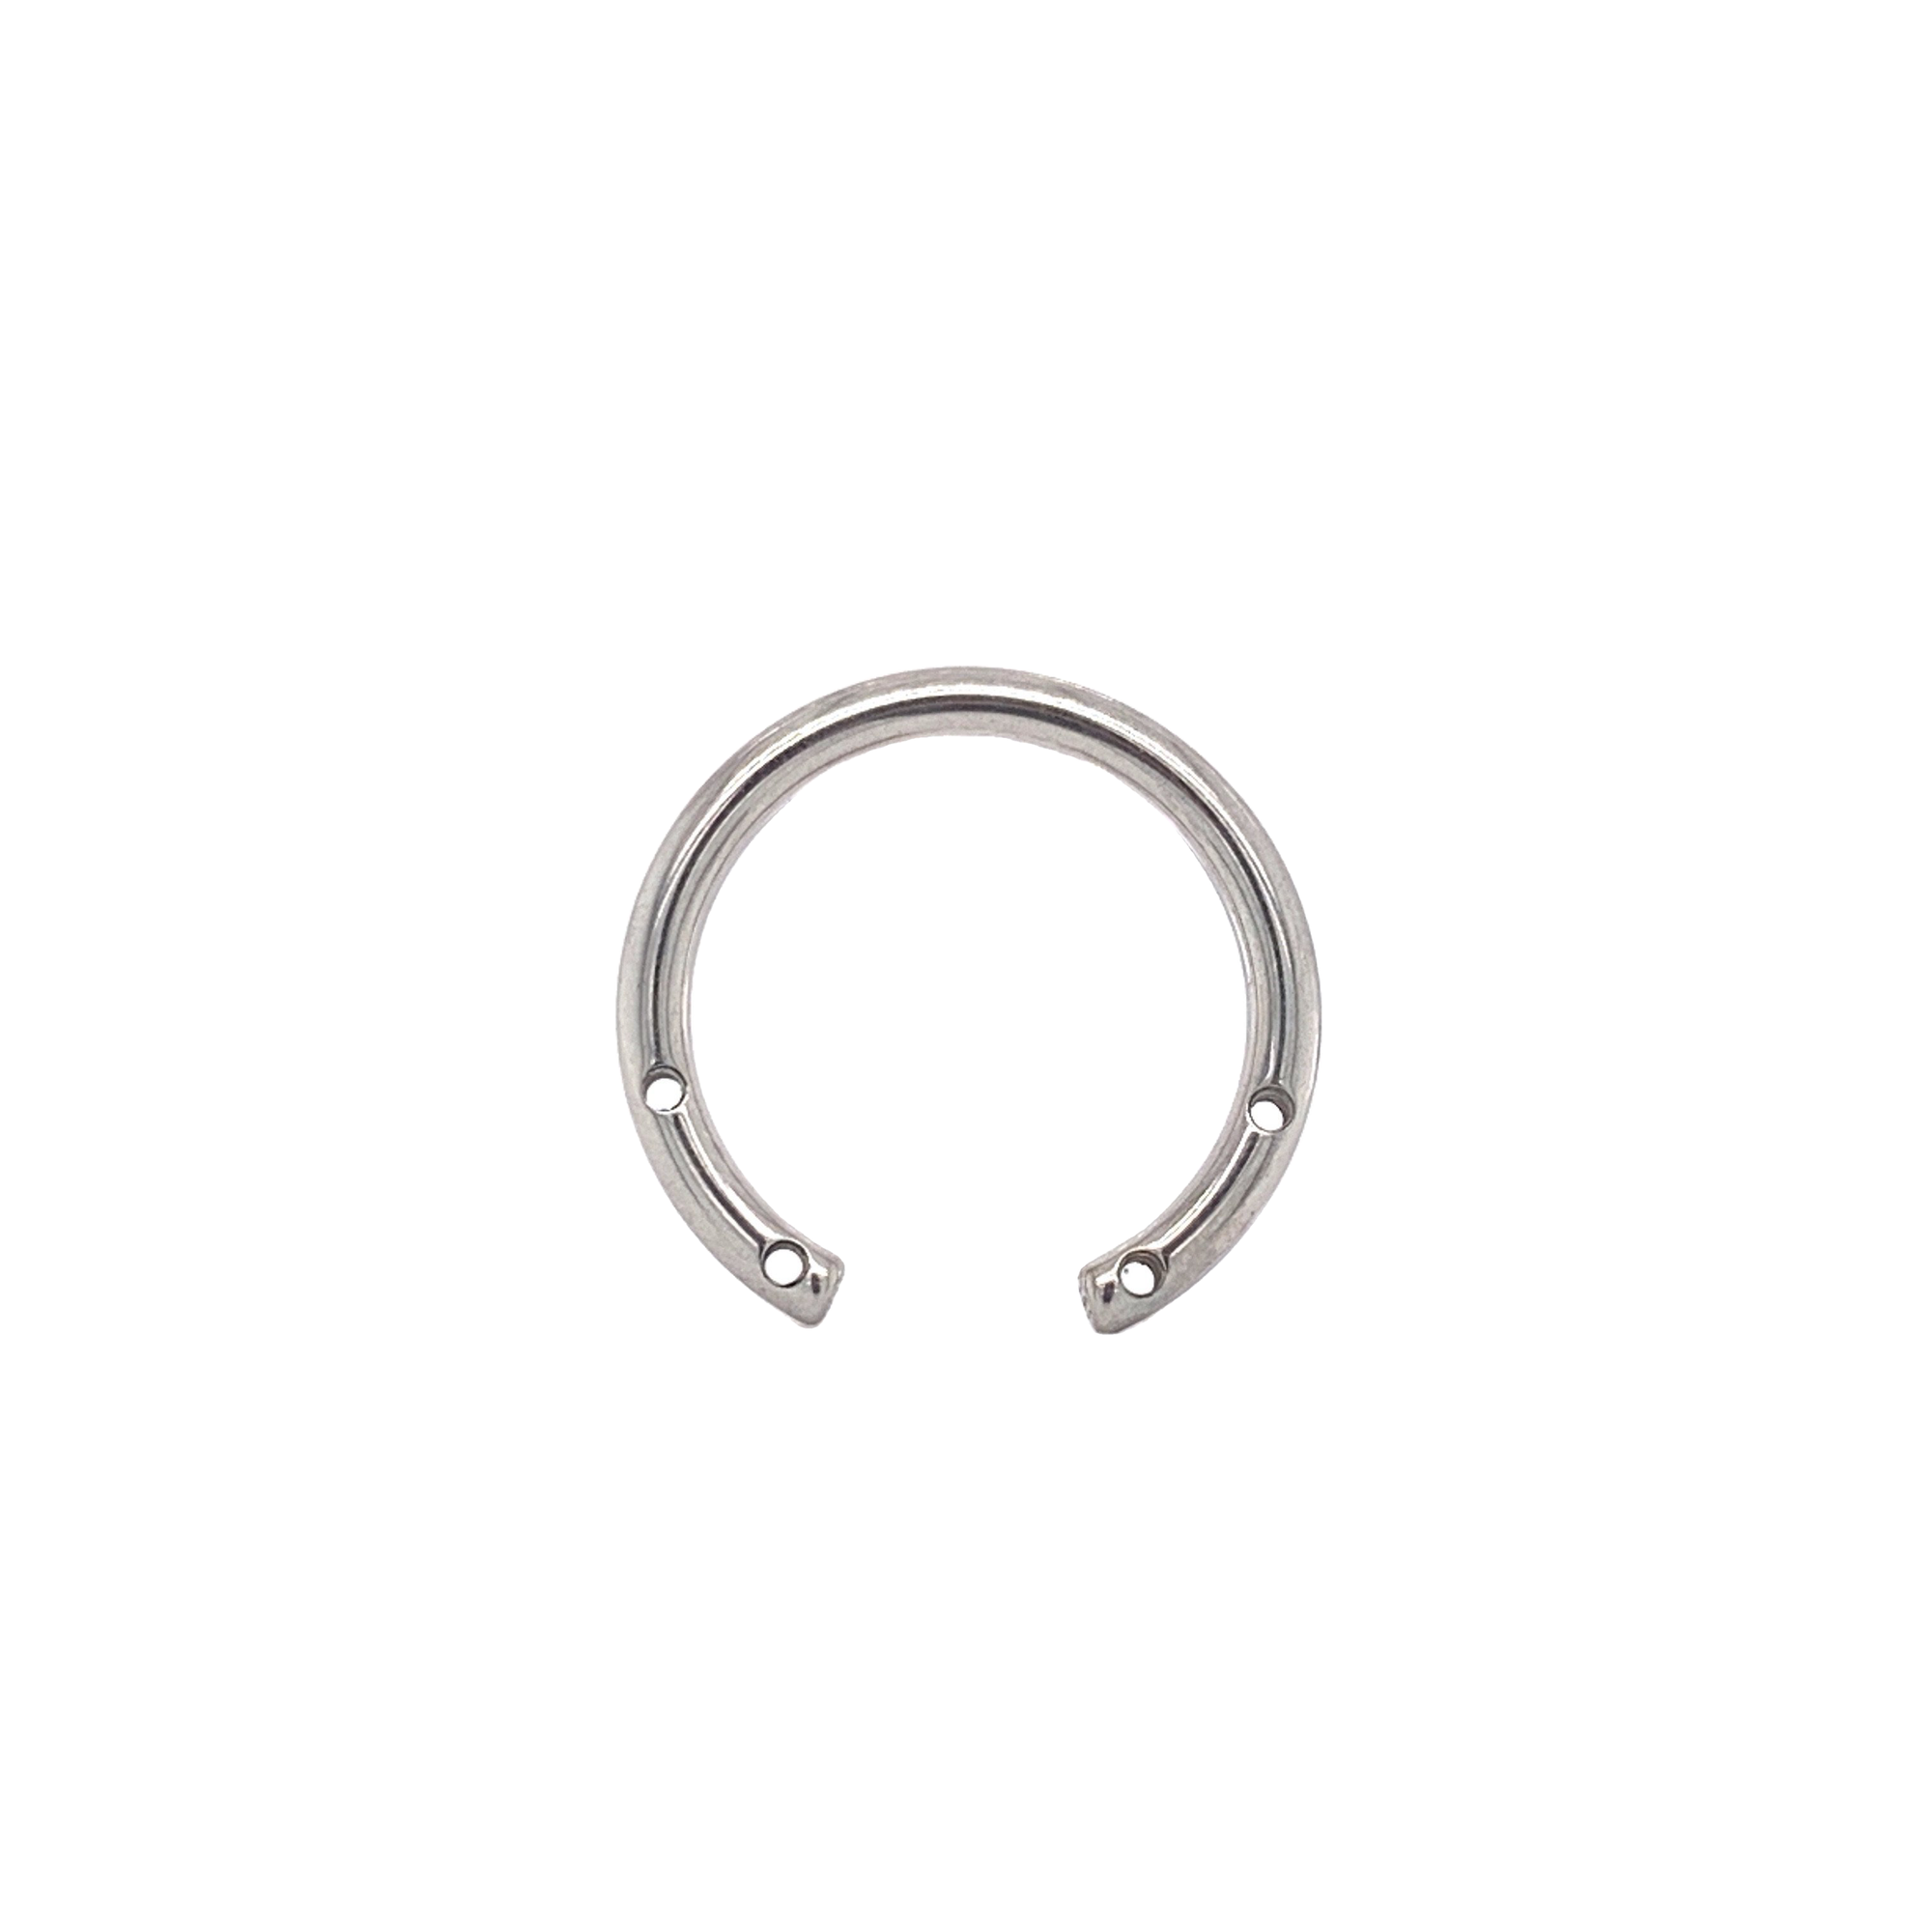 Circular Barbell With 4 Front Facing Threads (Shaft Only) 12Mm / 0.9Mm Curved